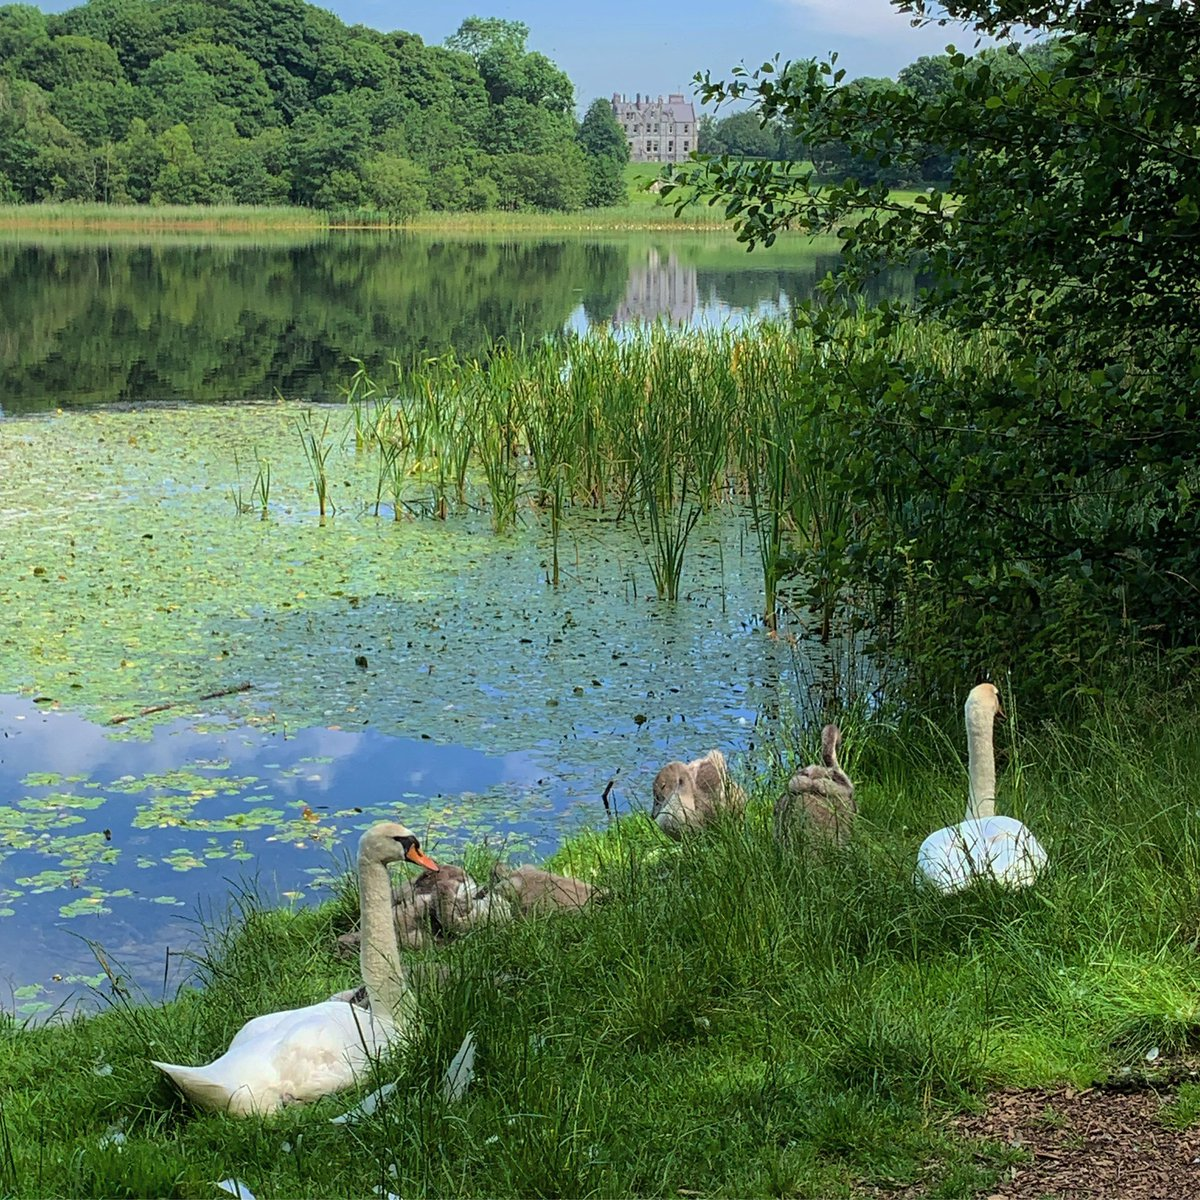 Last week our swans picked the perfect location to bask in the afternoon sun! What a view across the lake with Blarney House in the distance!  #blarneycastleandgardens #purecorkwelcomes #purecork #makeabreakforit #cork #ireland #blarney #castles #walks #follow https://t.co/0Q5z9qNk62